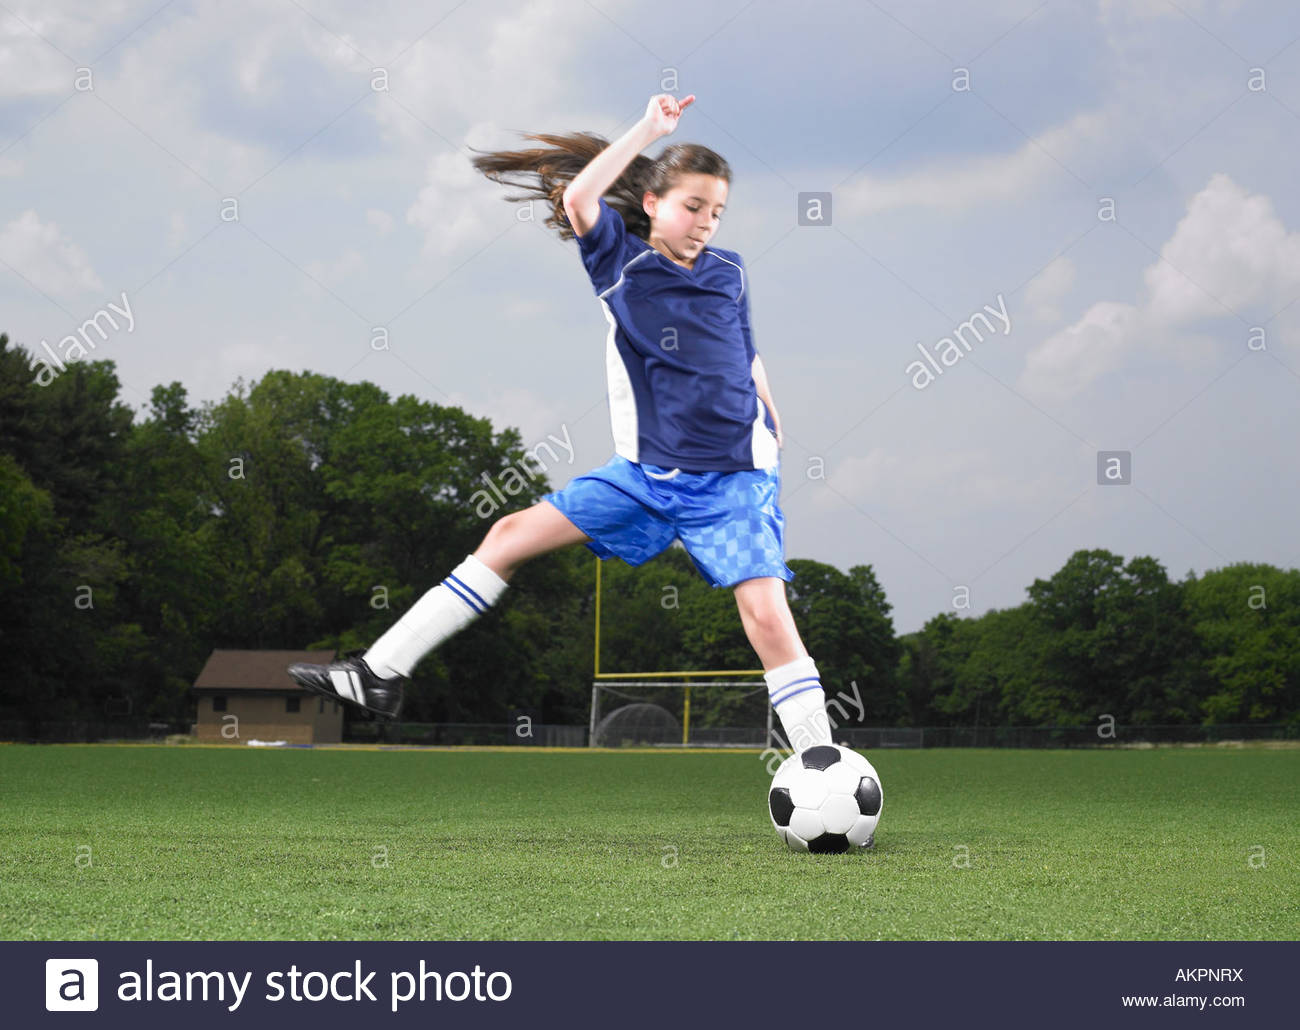 A footballer kicking a football - Stock Image